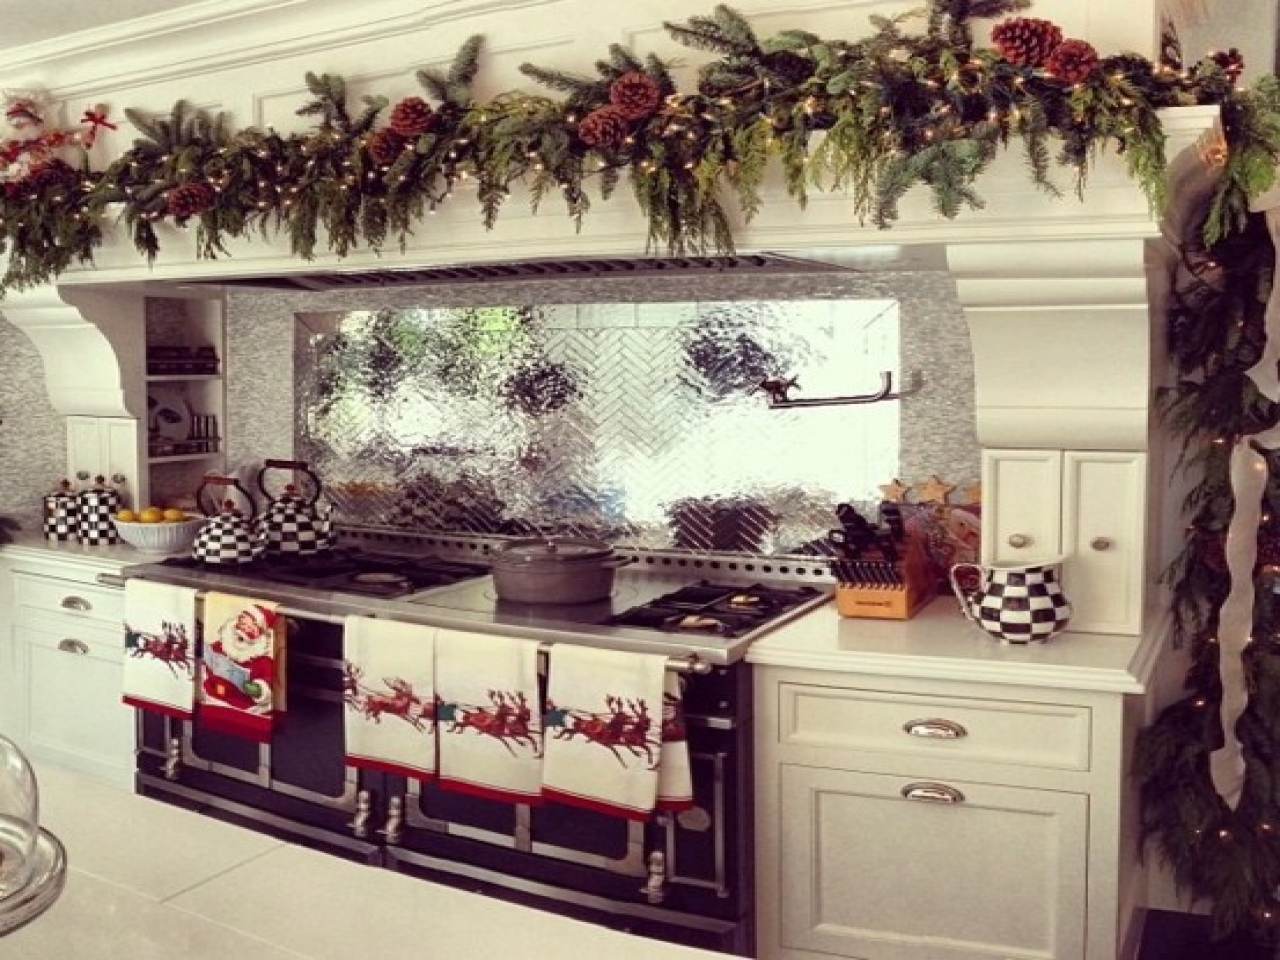 Christmas Decorations Ideas 2014 10 kitchen christmas decoration ideas | lovely spaces